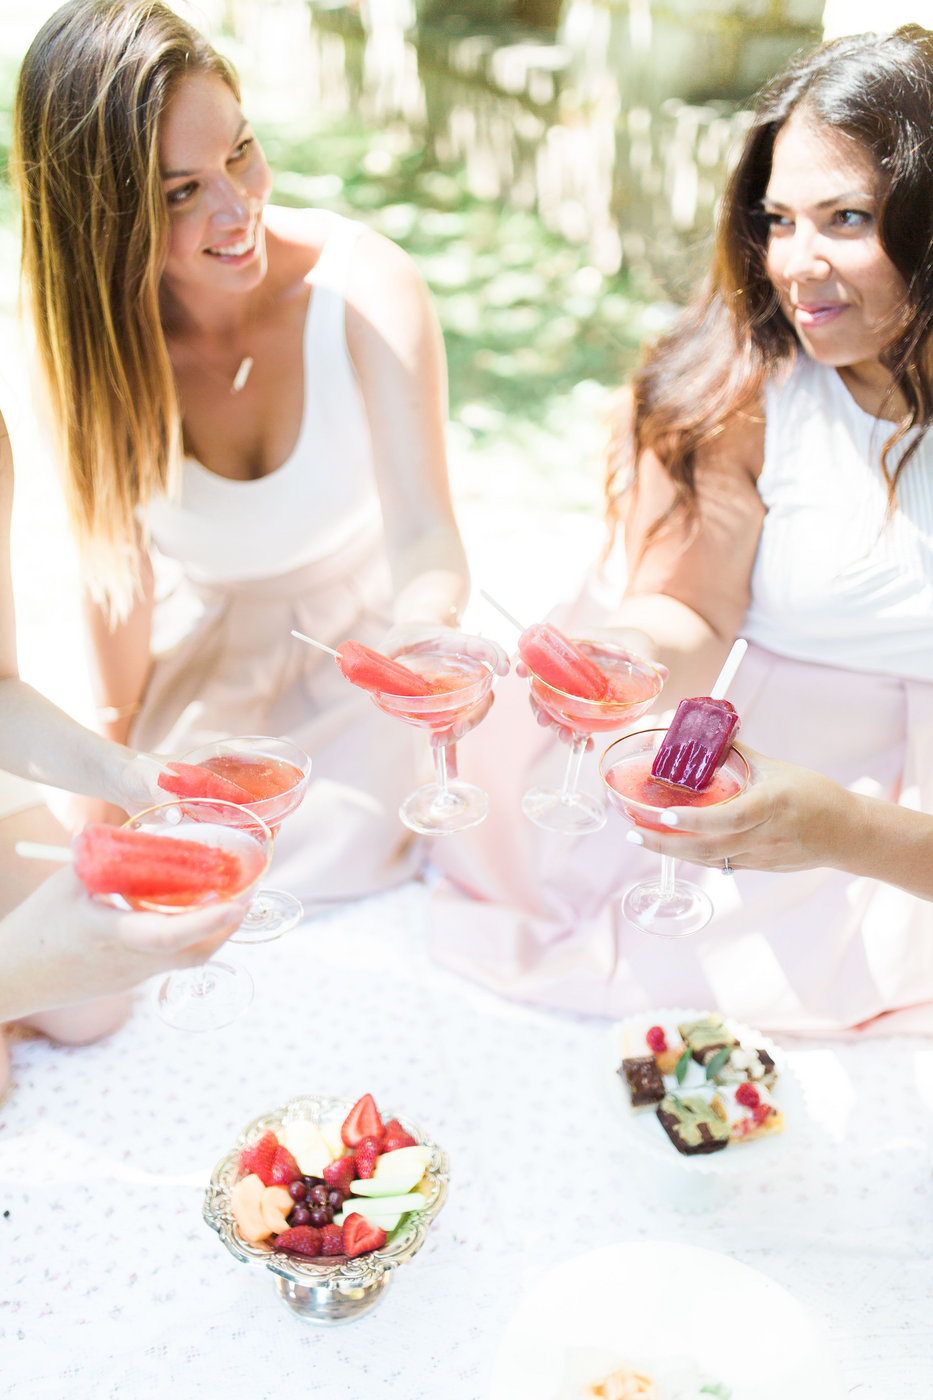 Who hosts (and pays for) the bridal shower?